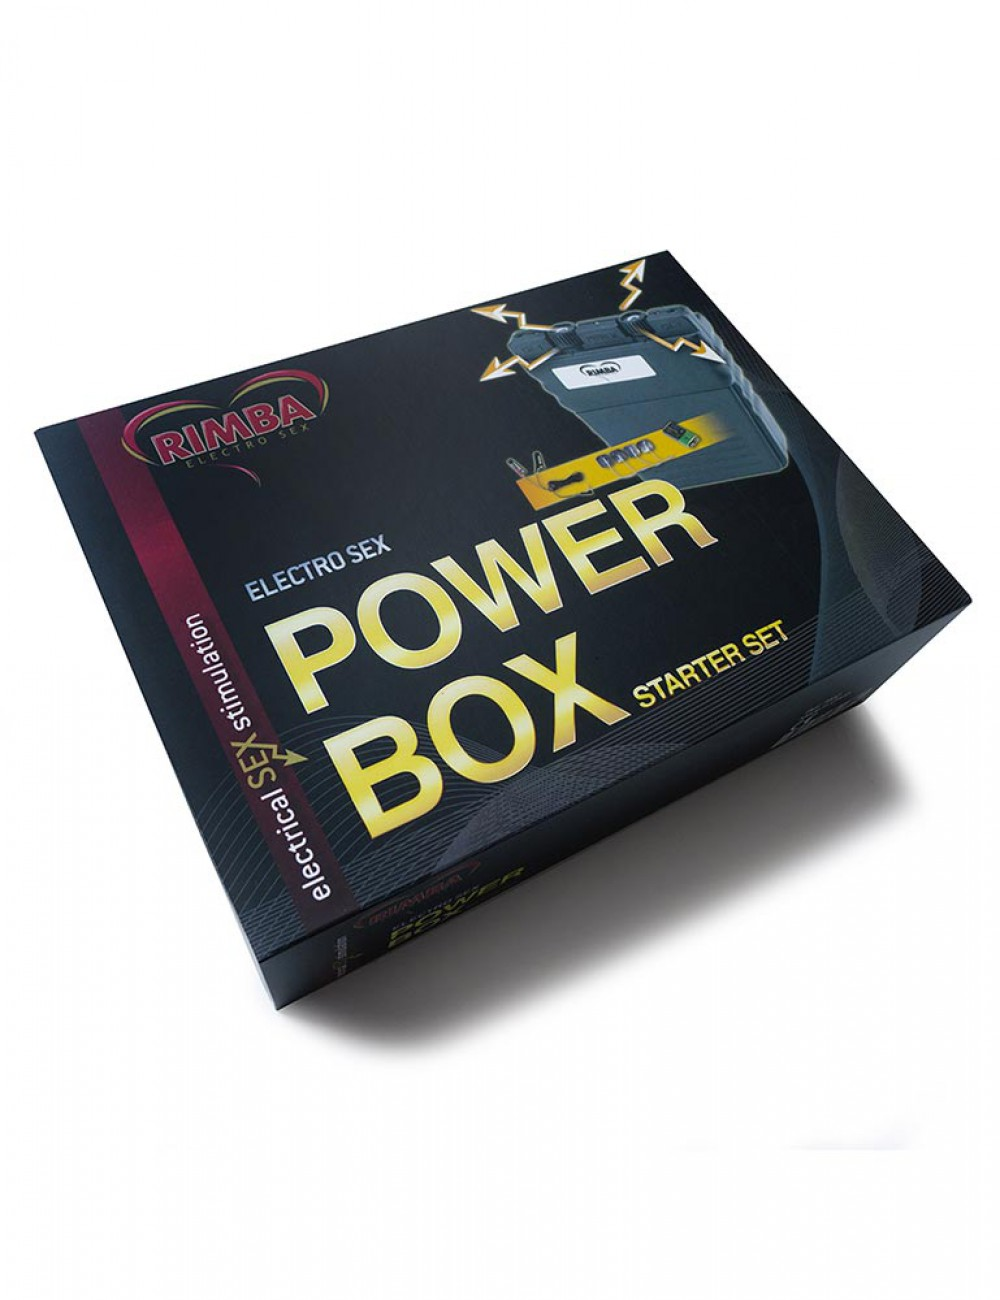 Rimba Electro Powerbox Stimulator Set